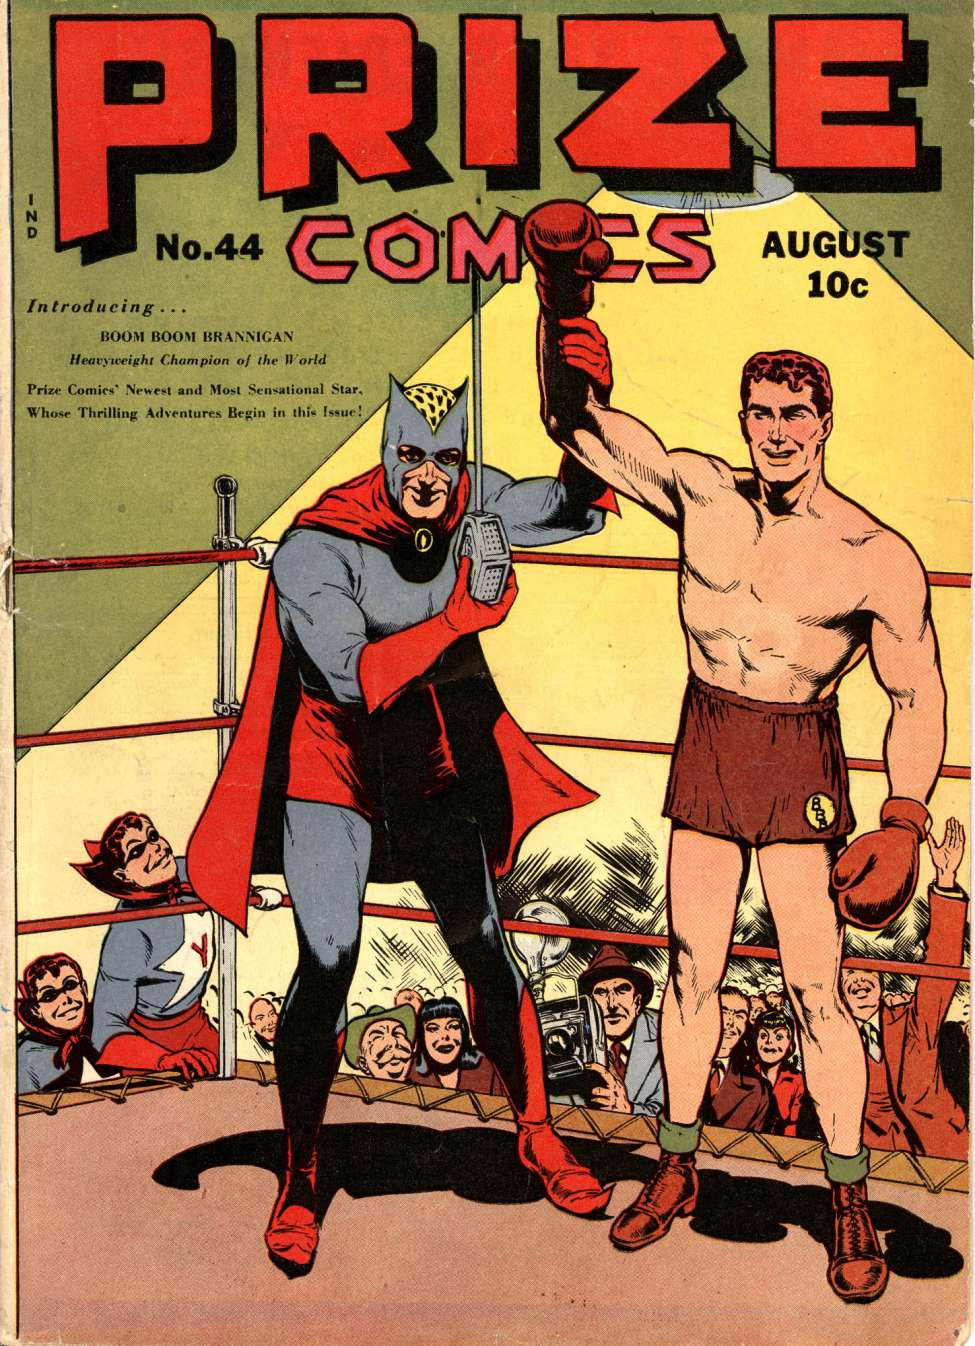 Comic Book Cover For Prize Comics v4 8 (44)